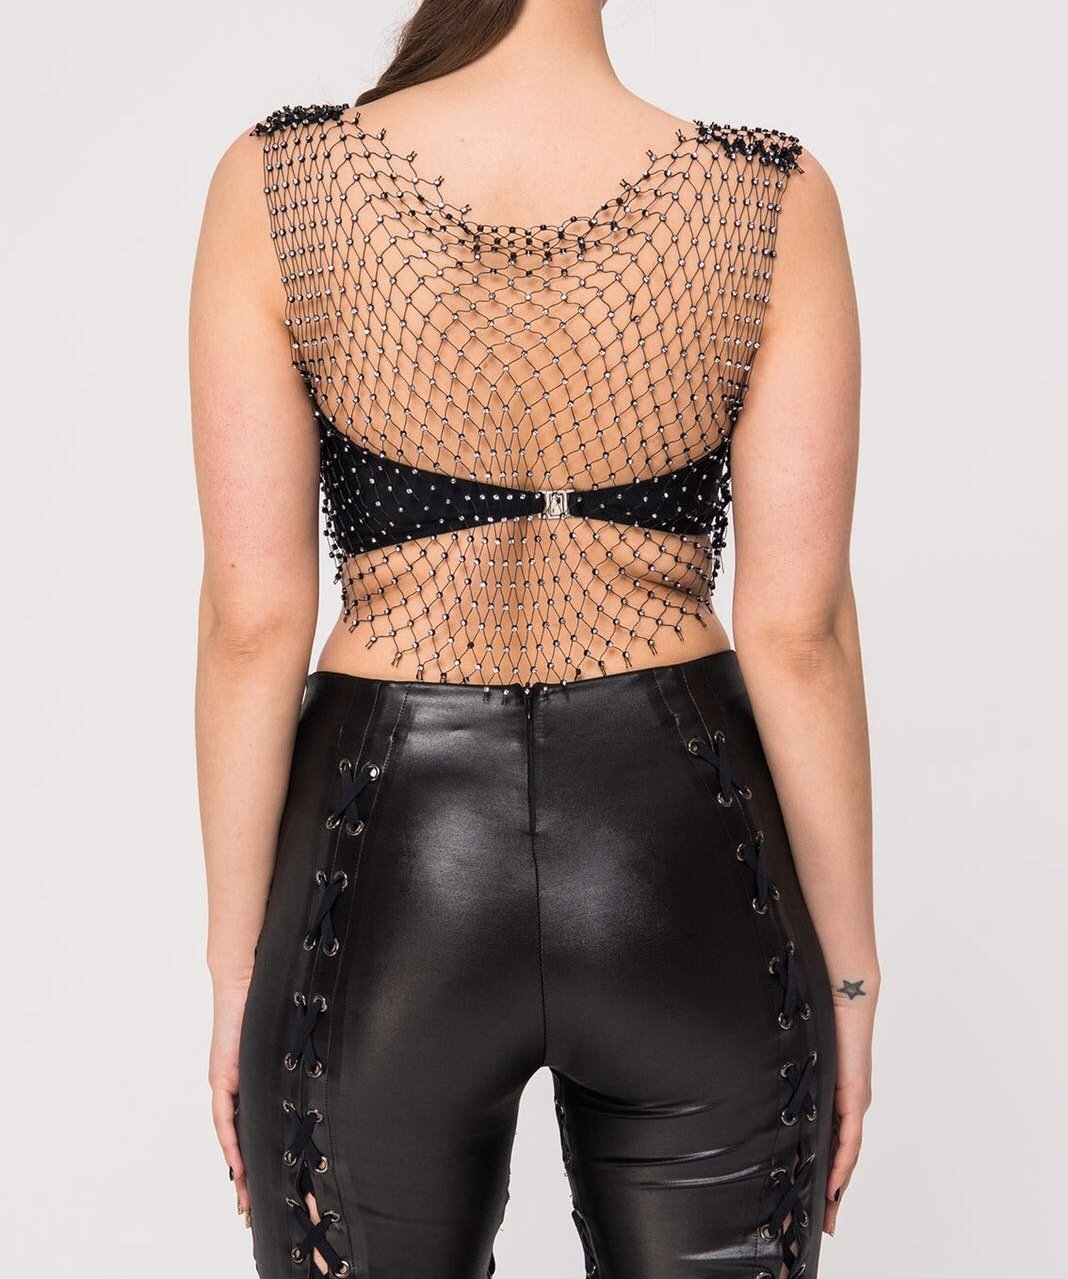 fishnet and diamanté Crop Top-Womens Clothing, back view.  sexy and unapologetic.